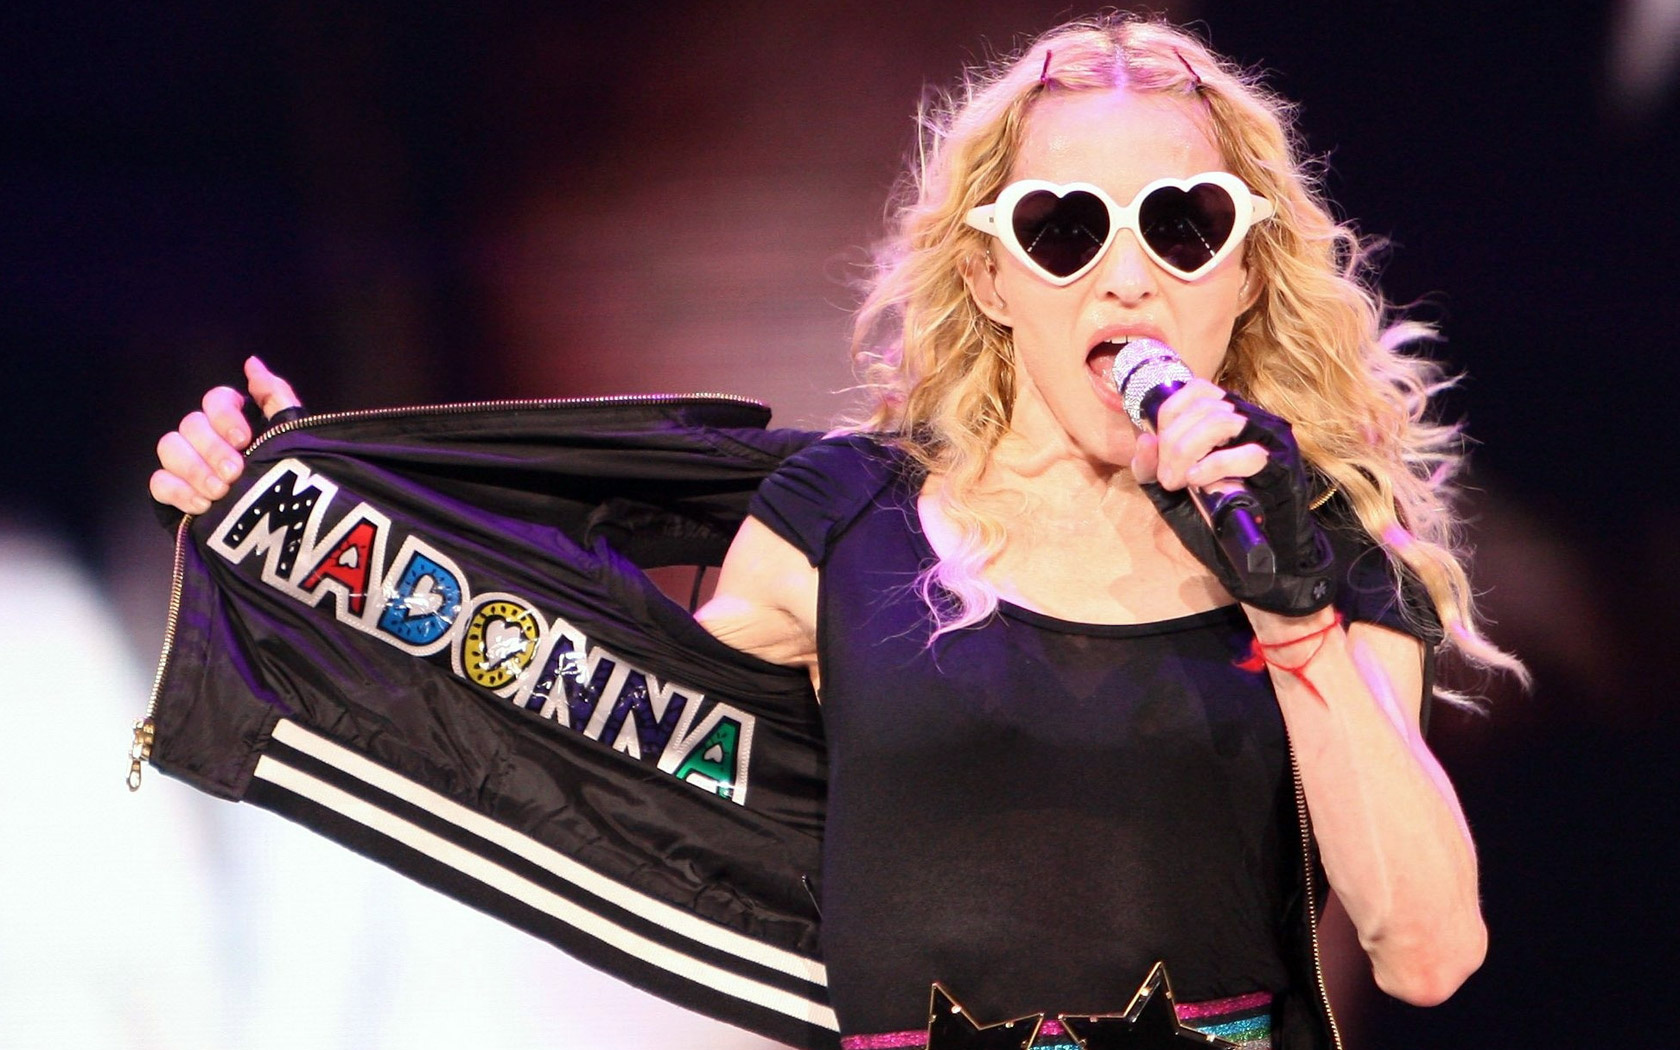 madonna_sticky_and_sweet_tour-wide.jpg